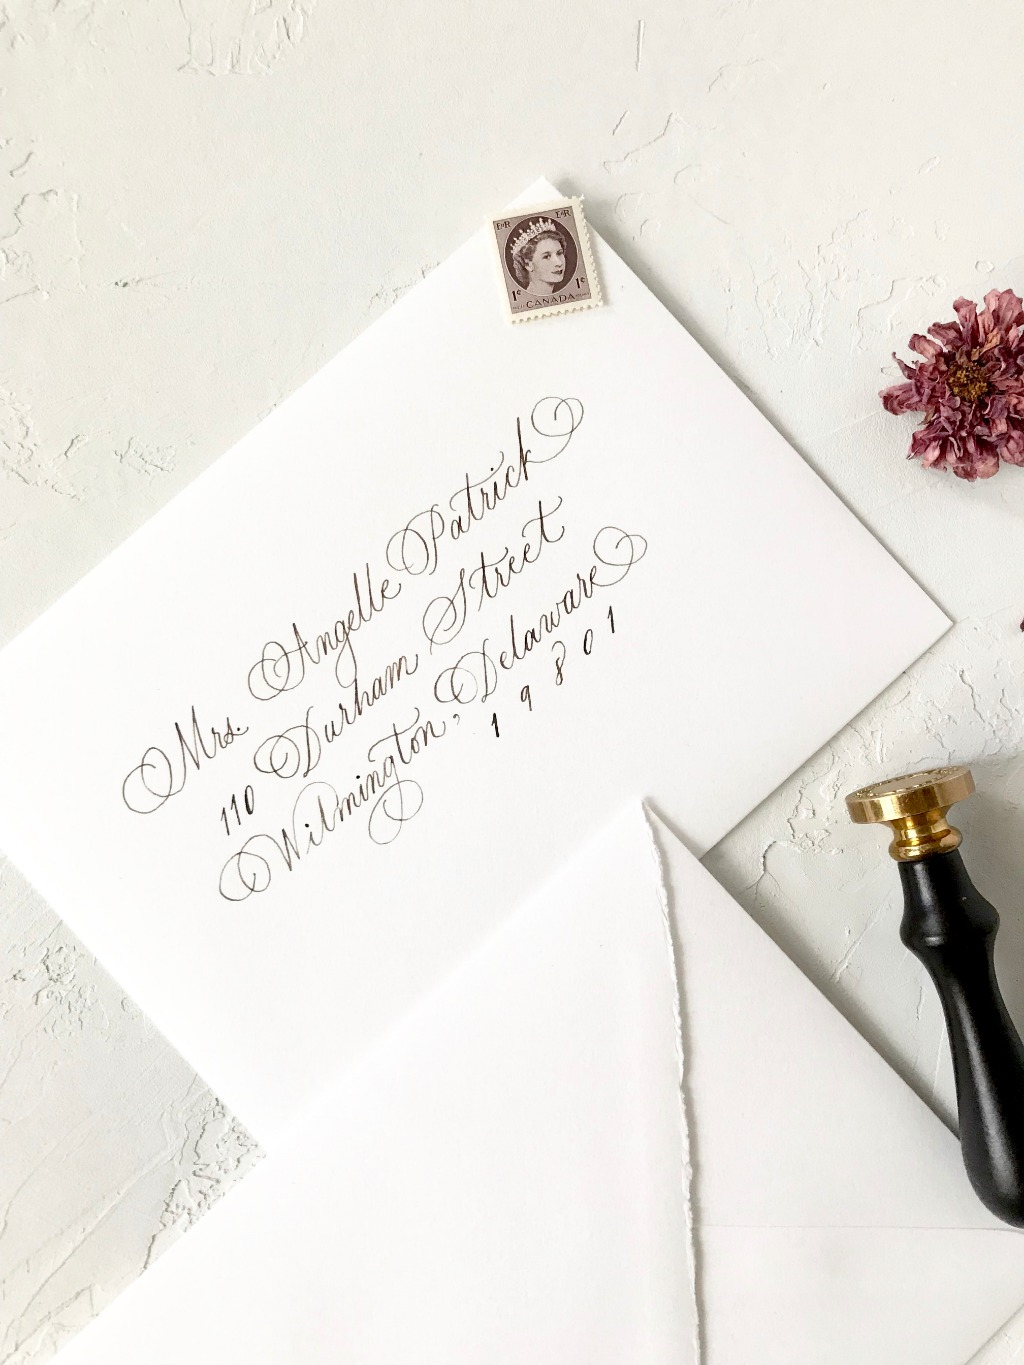 I would love to work with you on your Wedding. Add a personal and unique touch to your big day incorporating handwritten calligraphy